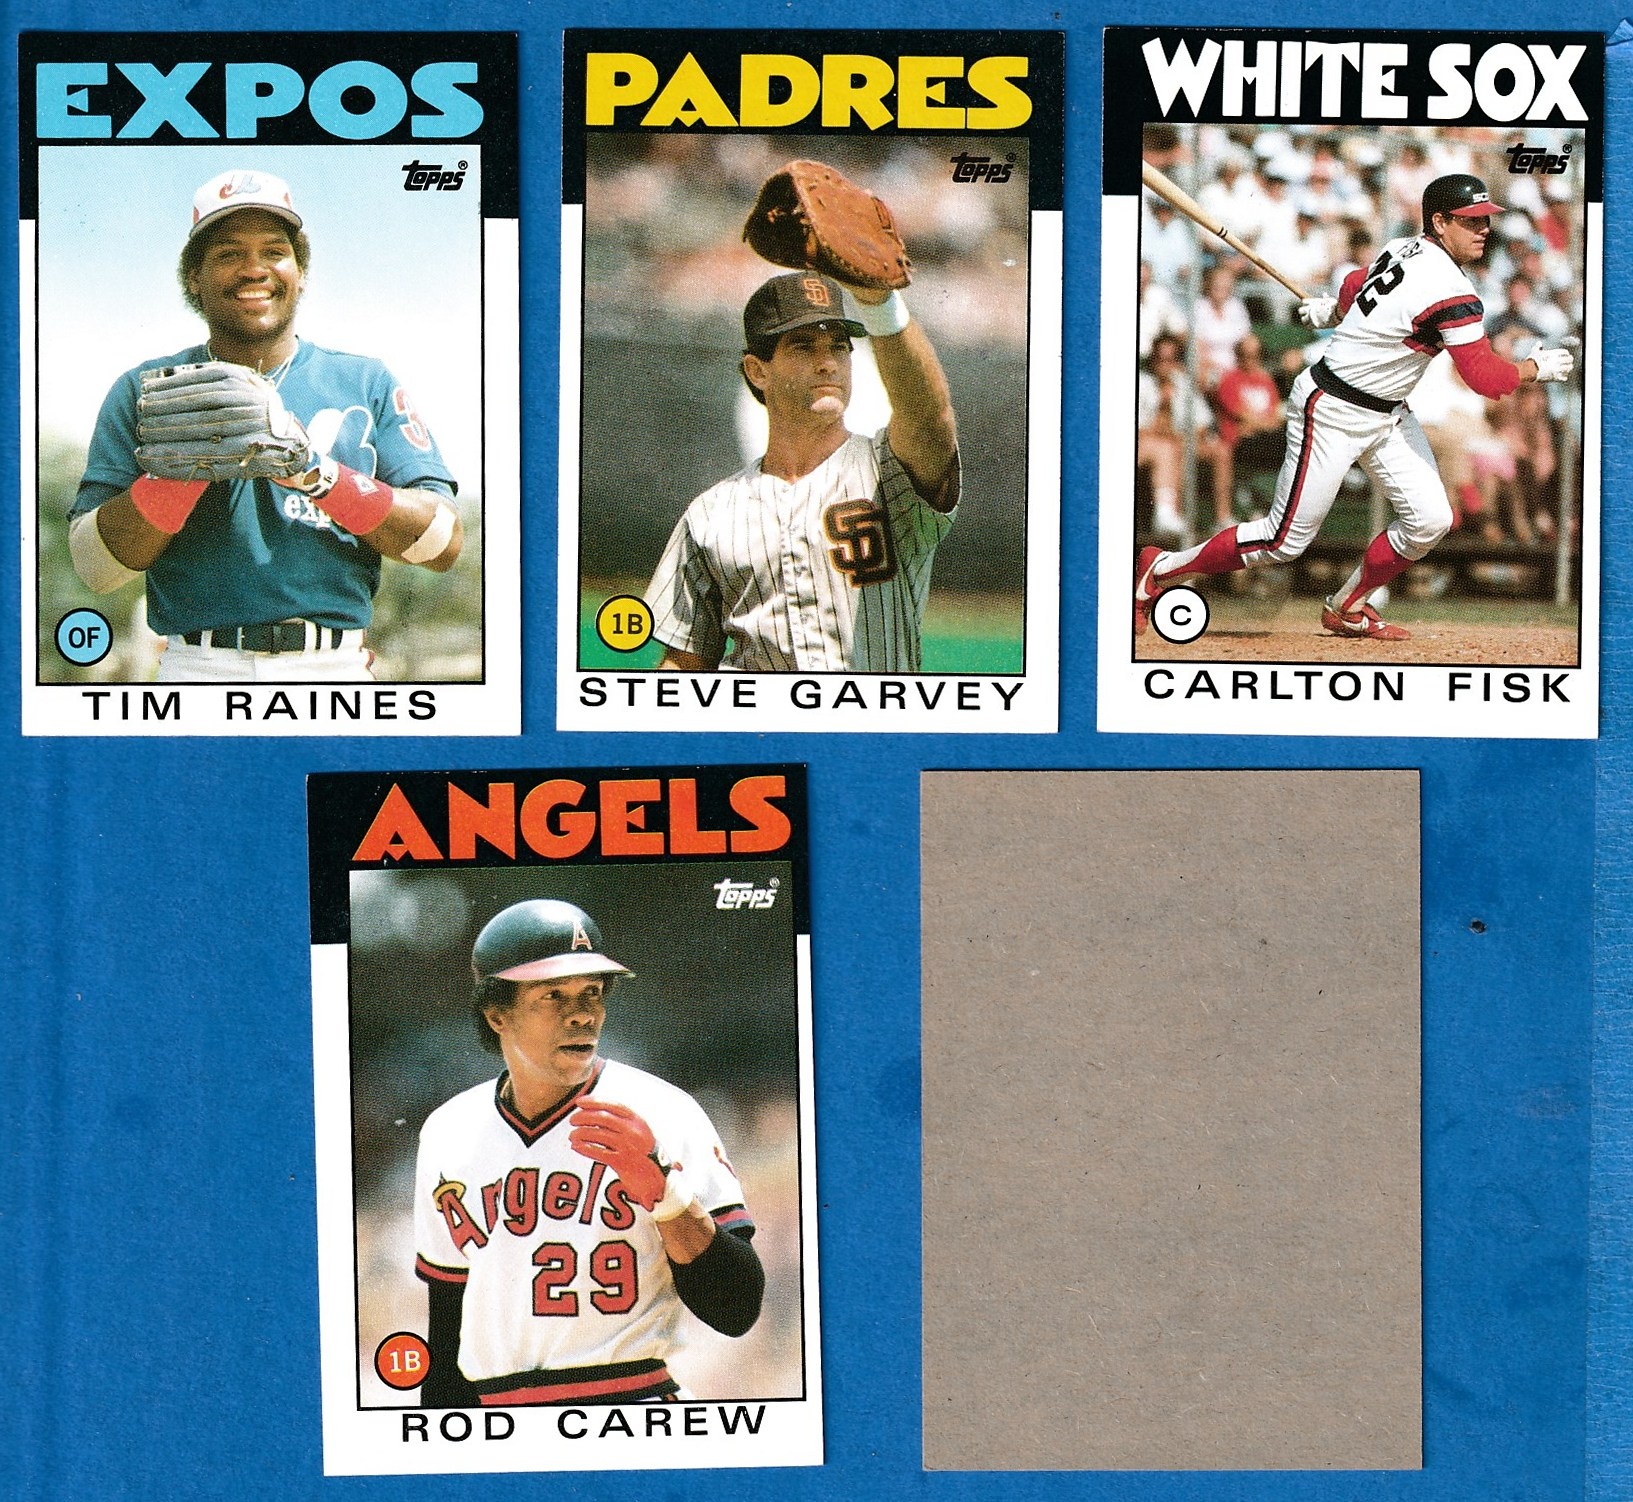 1986 Topps BLANK-BACK PROOF #400 Rod Carew (Angels) Baseball cards value